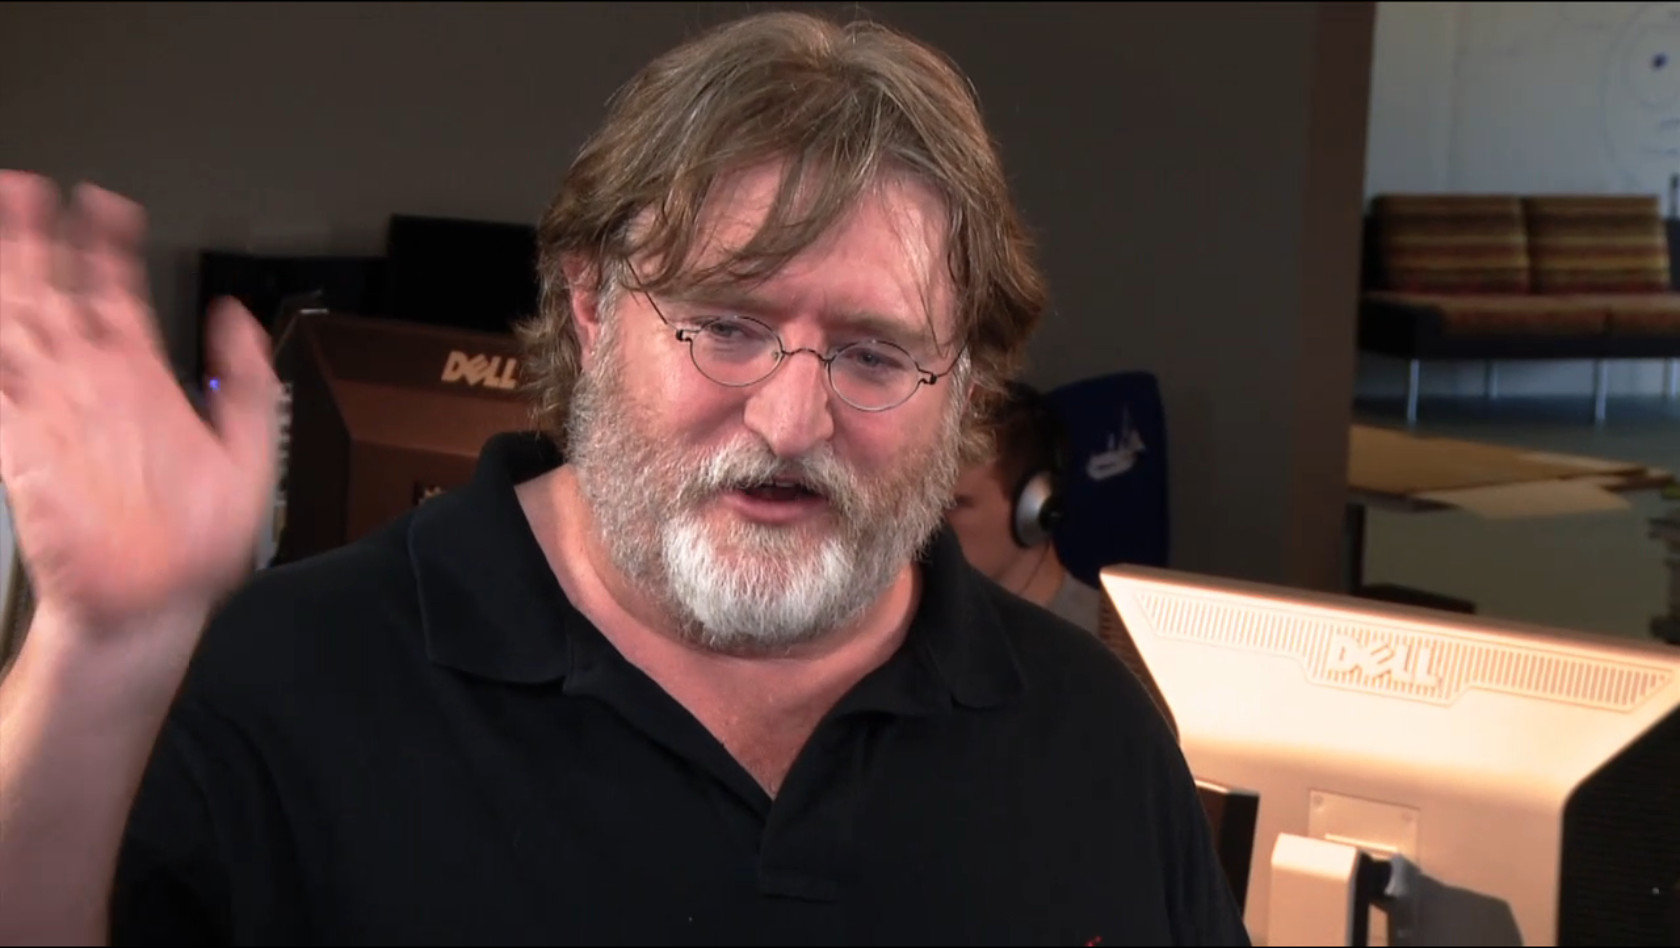 1680x948 > Gabe Newell Wallpapers